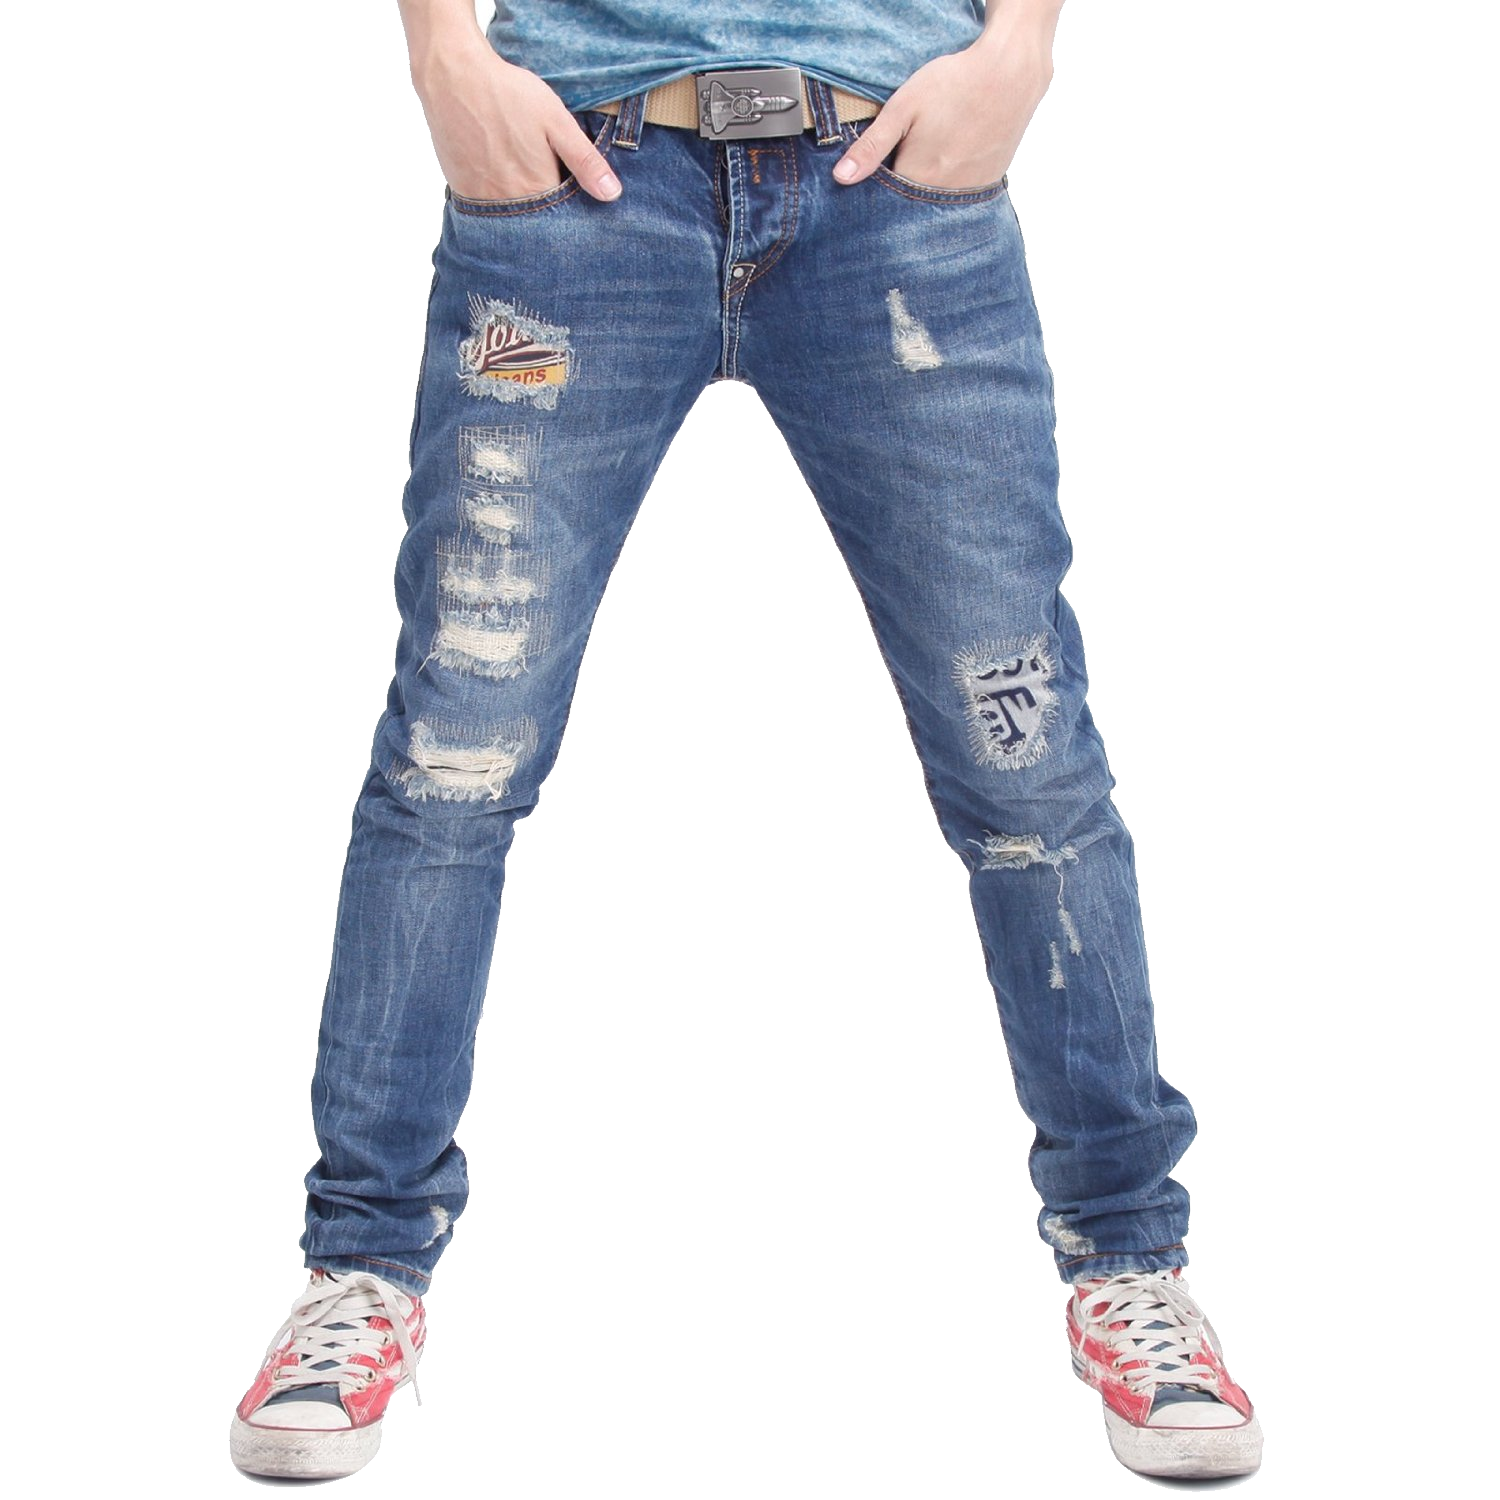 Jeans Fashion Slim-fit pants Denim - jeans 1500*1500 transprent Png Free  Download - Blue, Waist, Denim. - Pants PNG HD